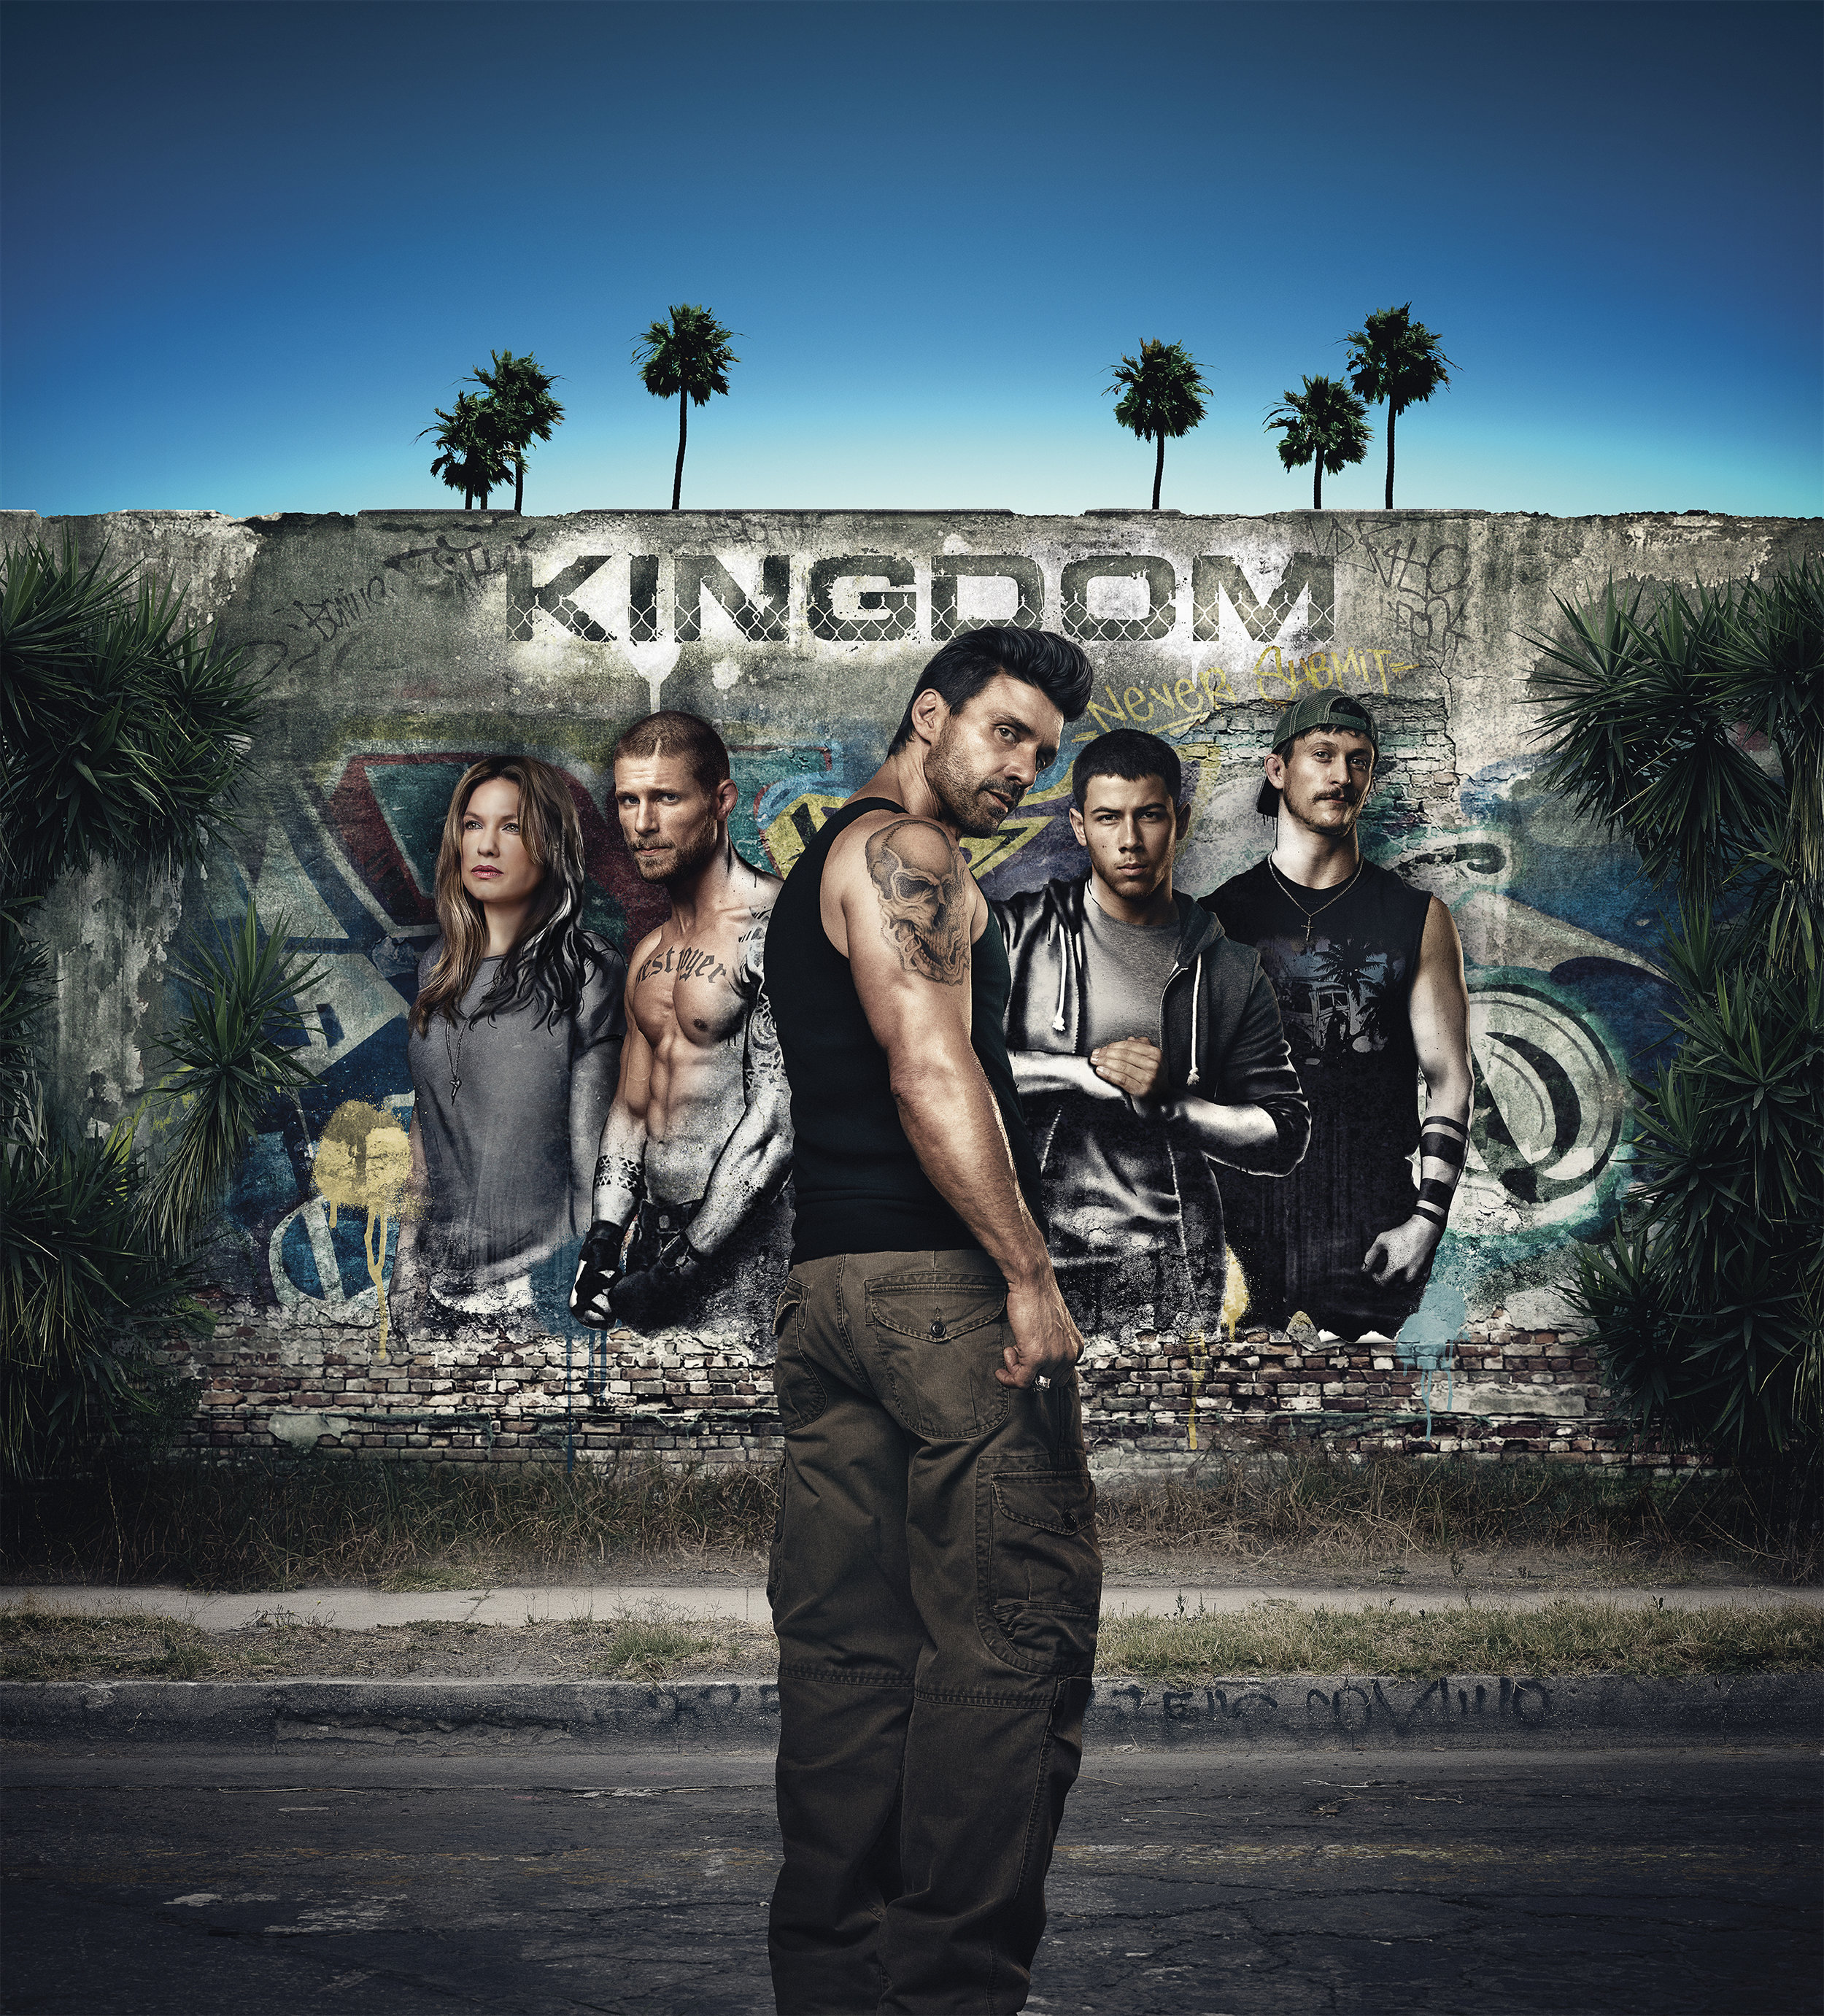 SUP_Kingdom_KeyArt_WallFlat_M11R.jpg